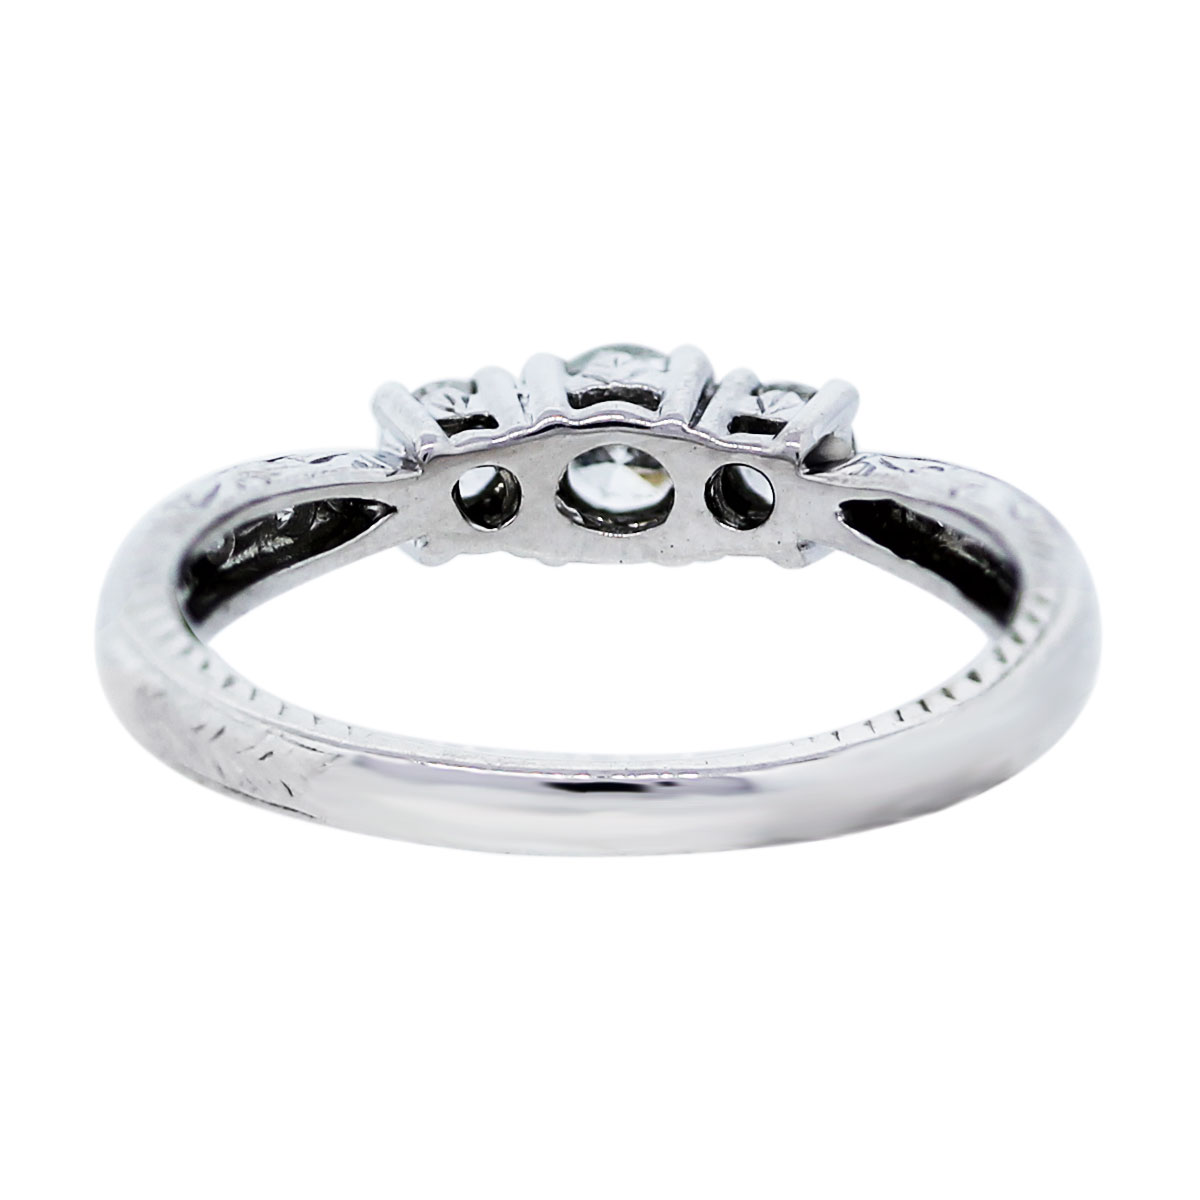 14k White Gold 1/2 Carat Three Stone Diamond Engagement Ring